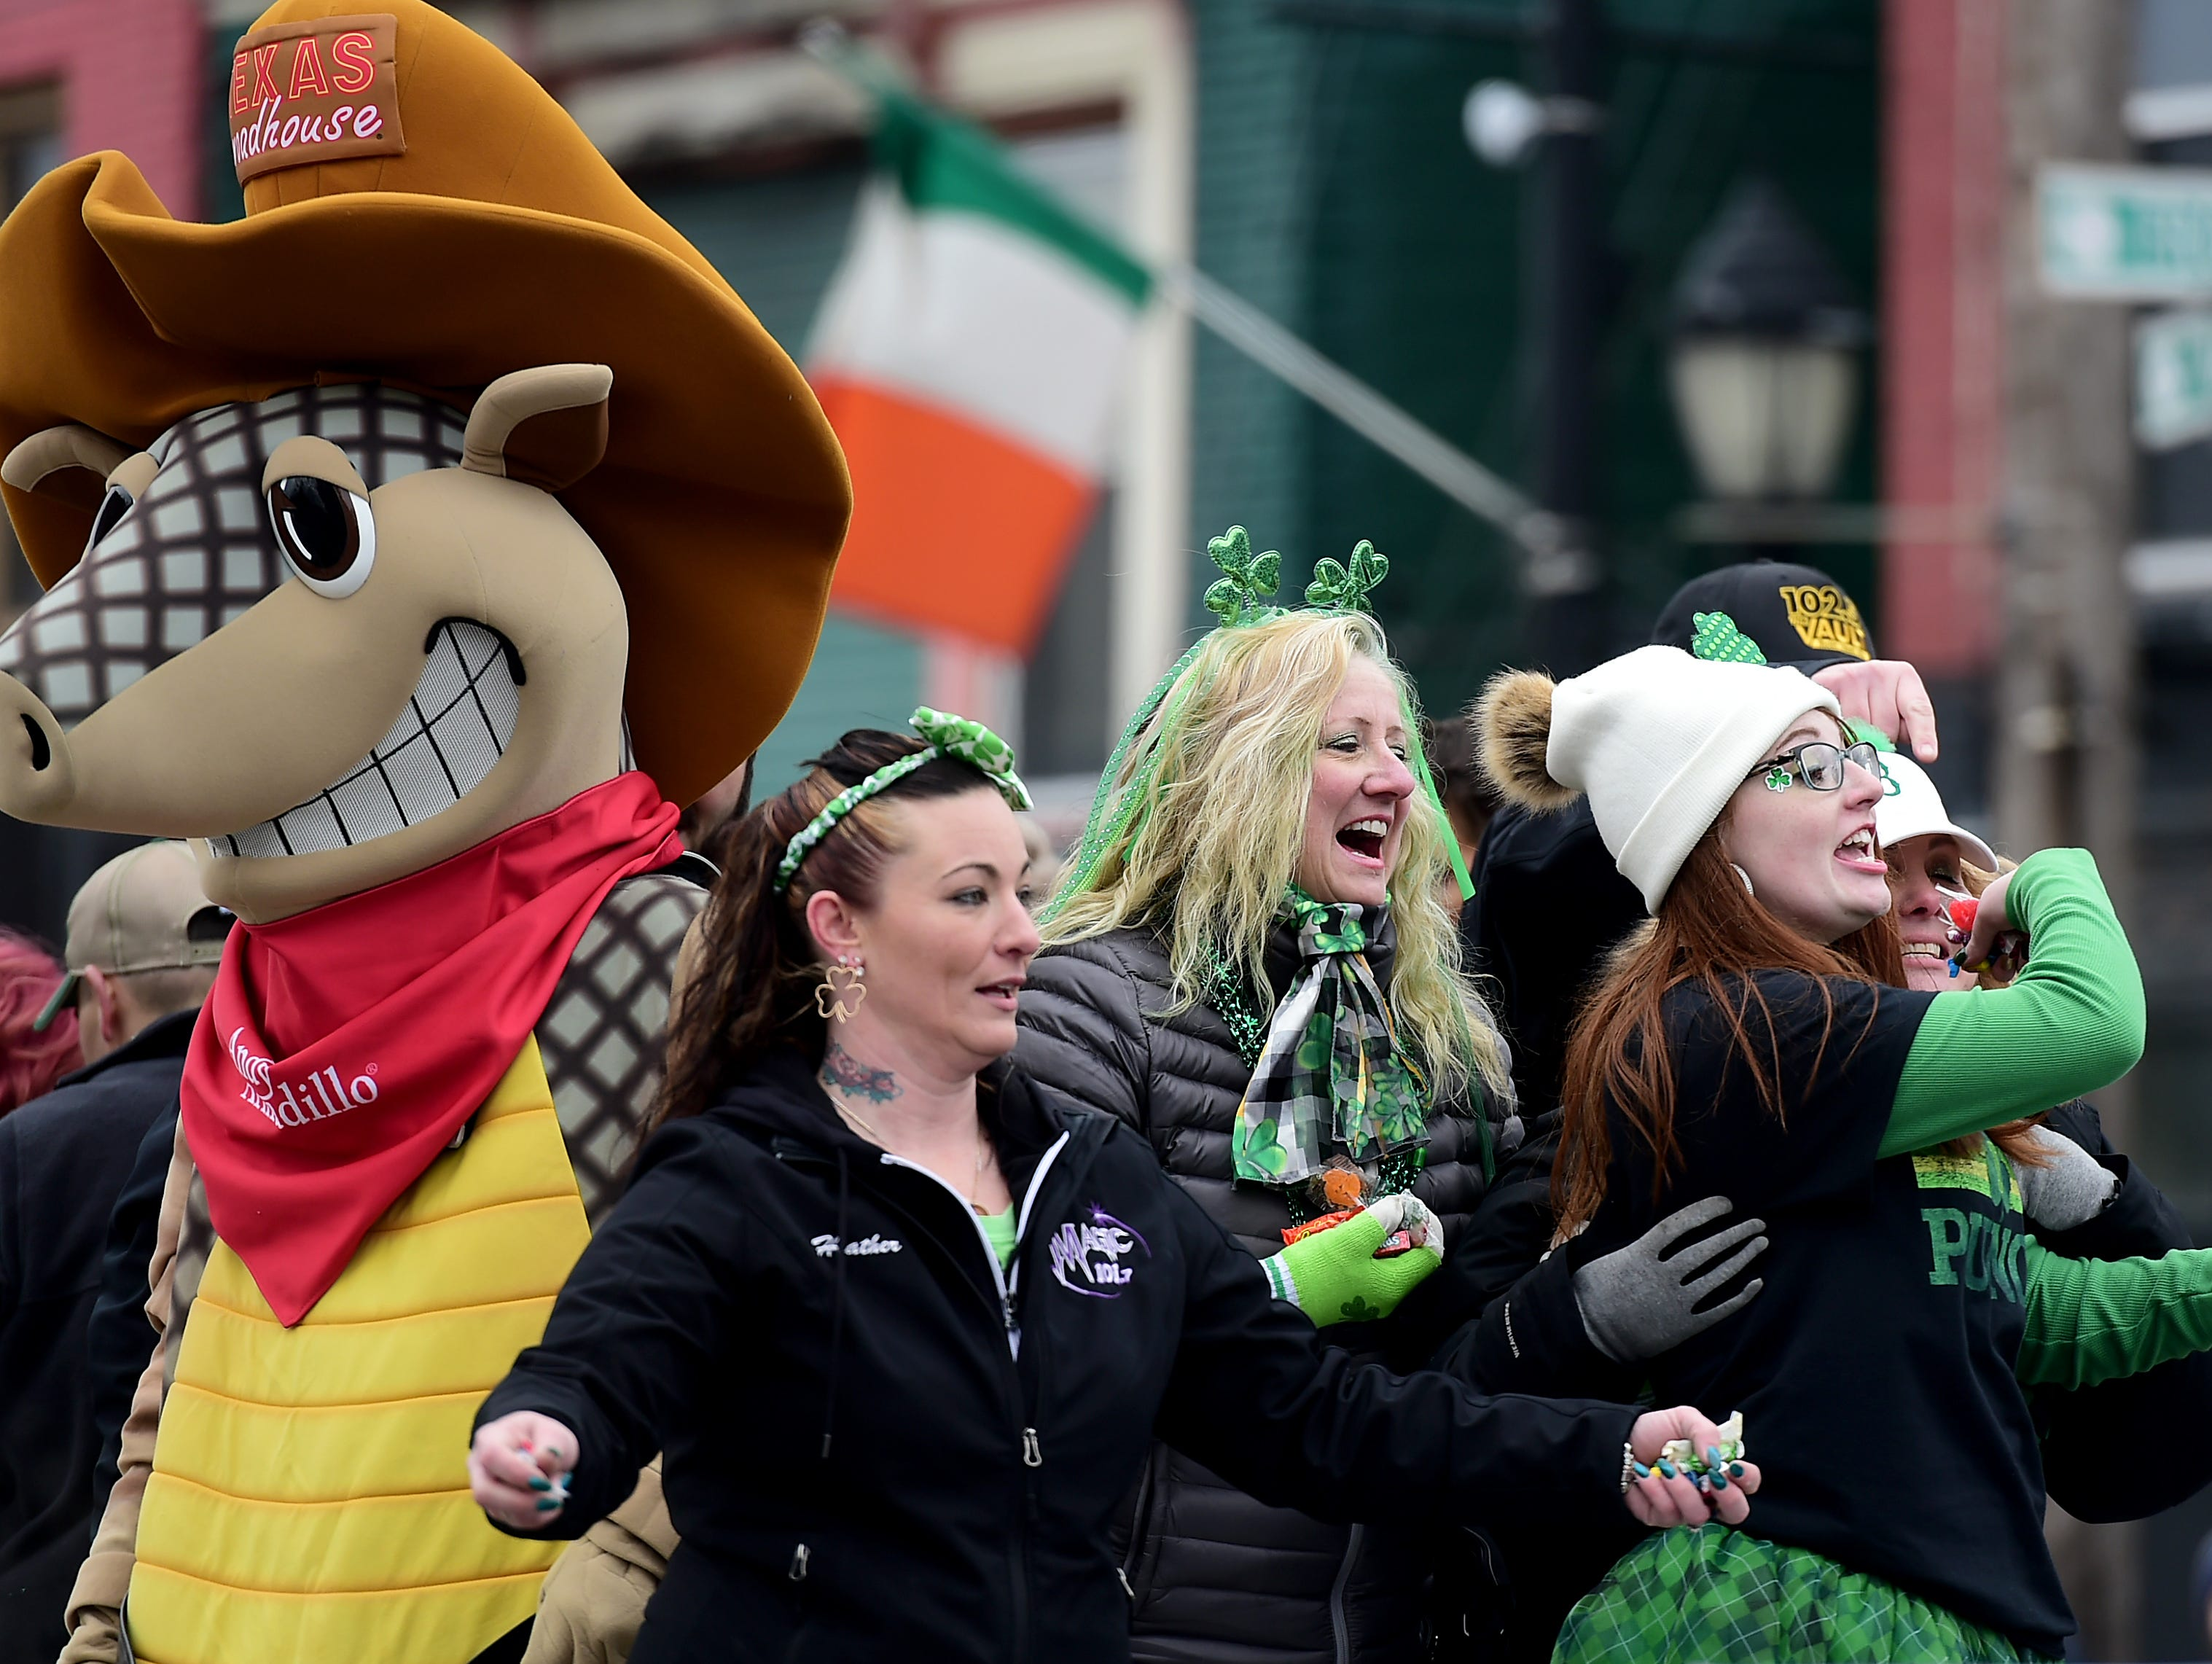 The employees of Texas Roadhouse throw candy from their float during the annual St. Patrick's Day Parade in downtown Binghamton. March 2, 2019.